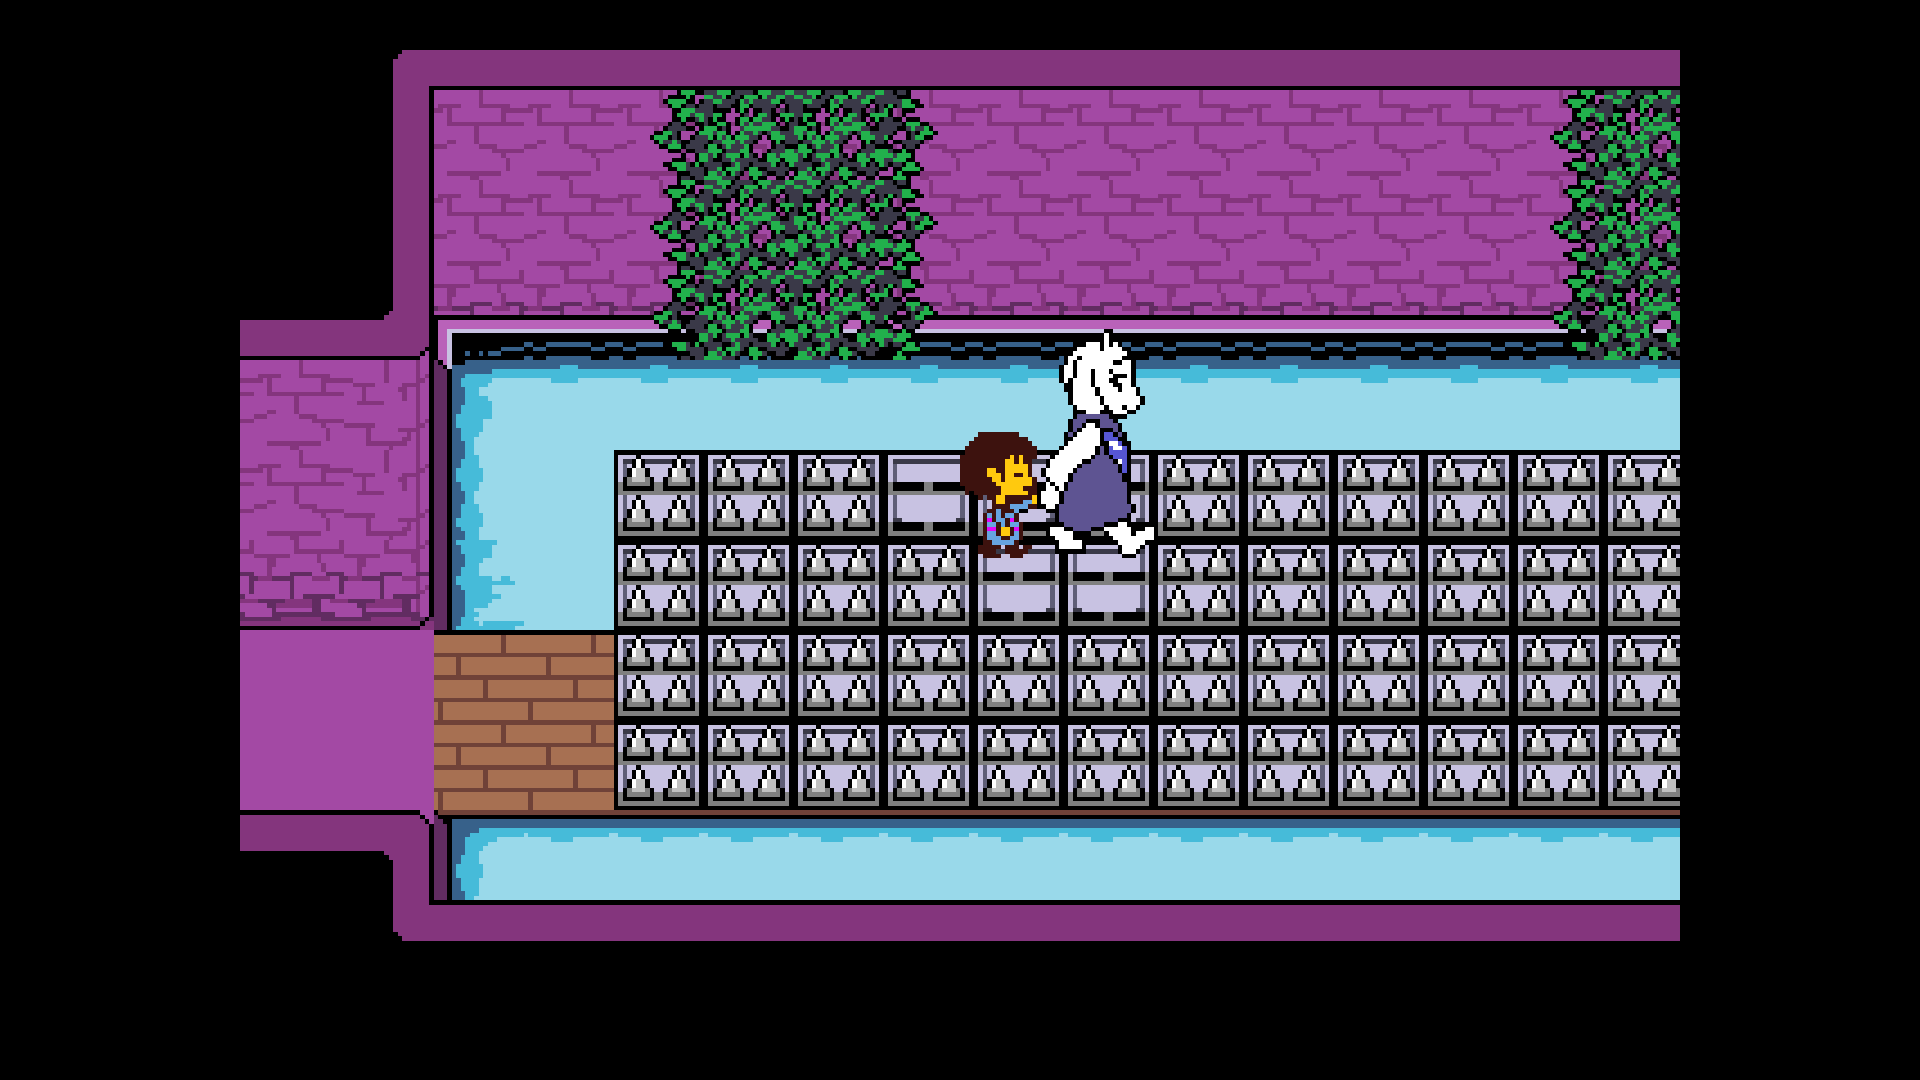 Kickstarter Funded Undertale is the Top Rated PC Game on Metacritic